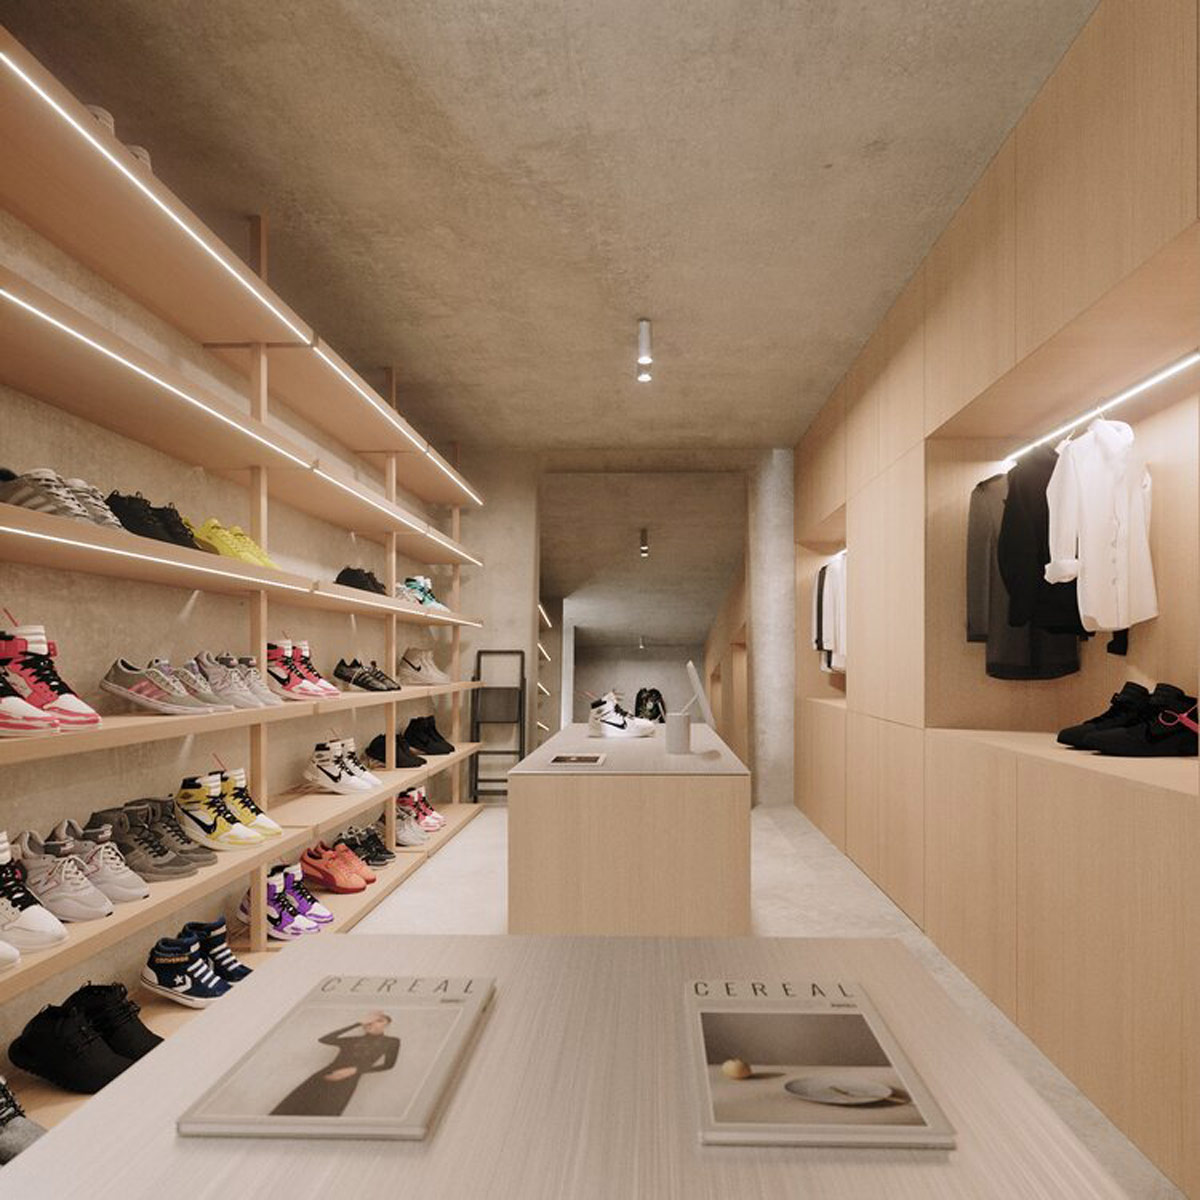 walk-in-wardrobe-1-1